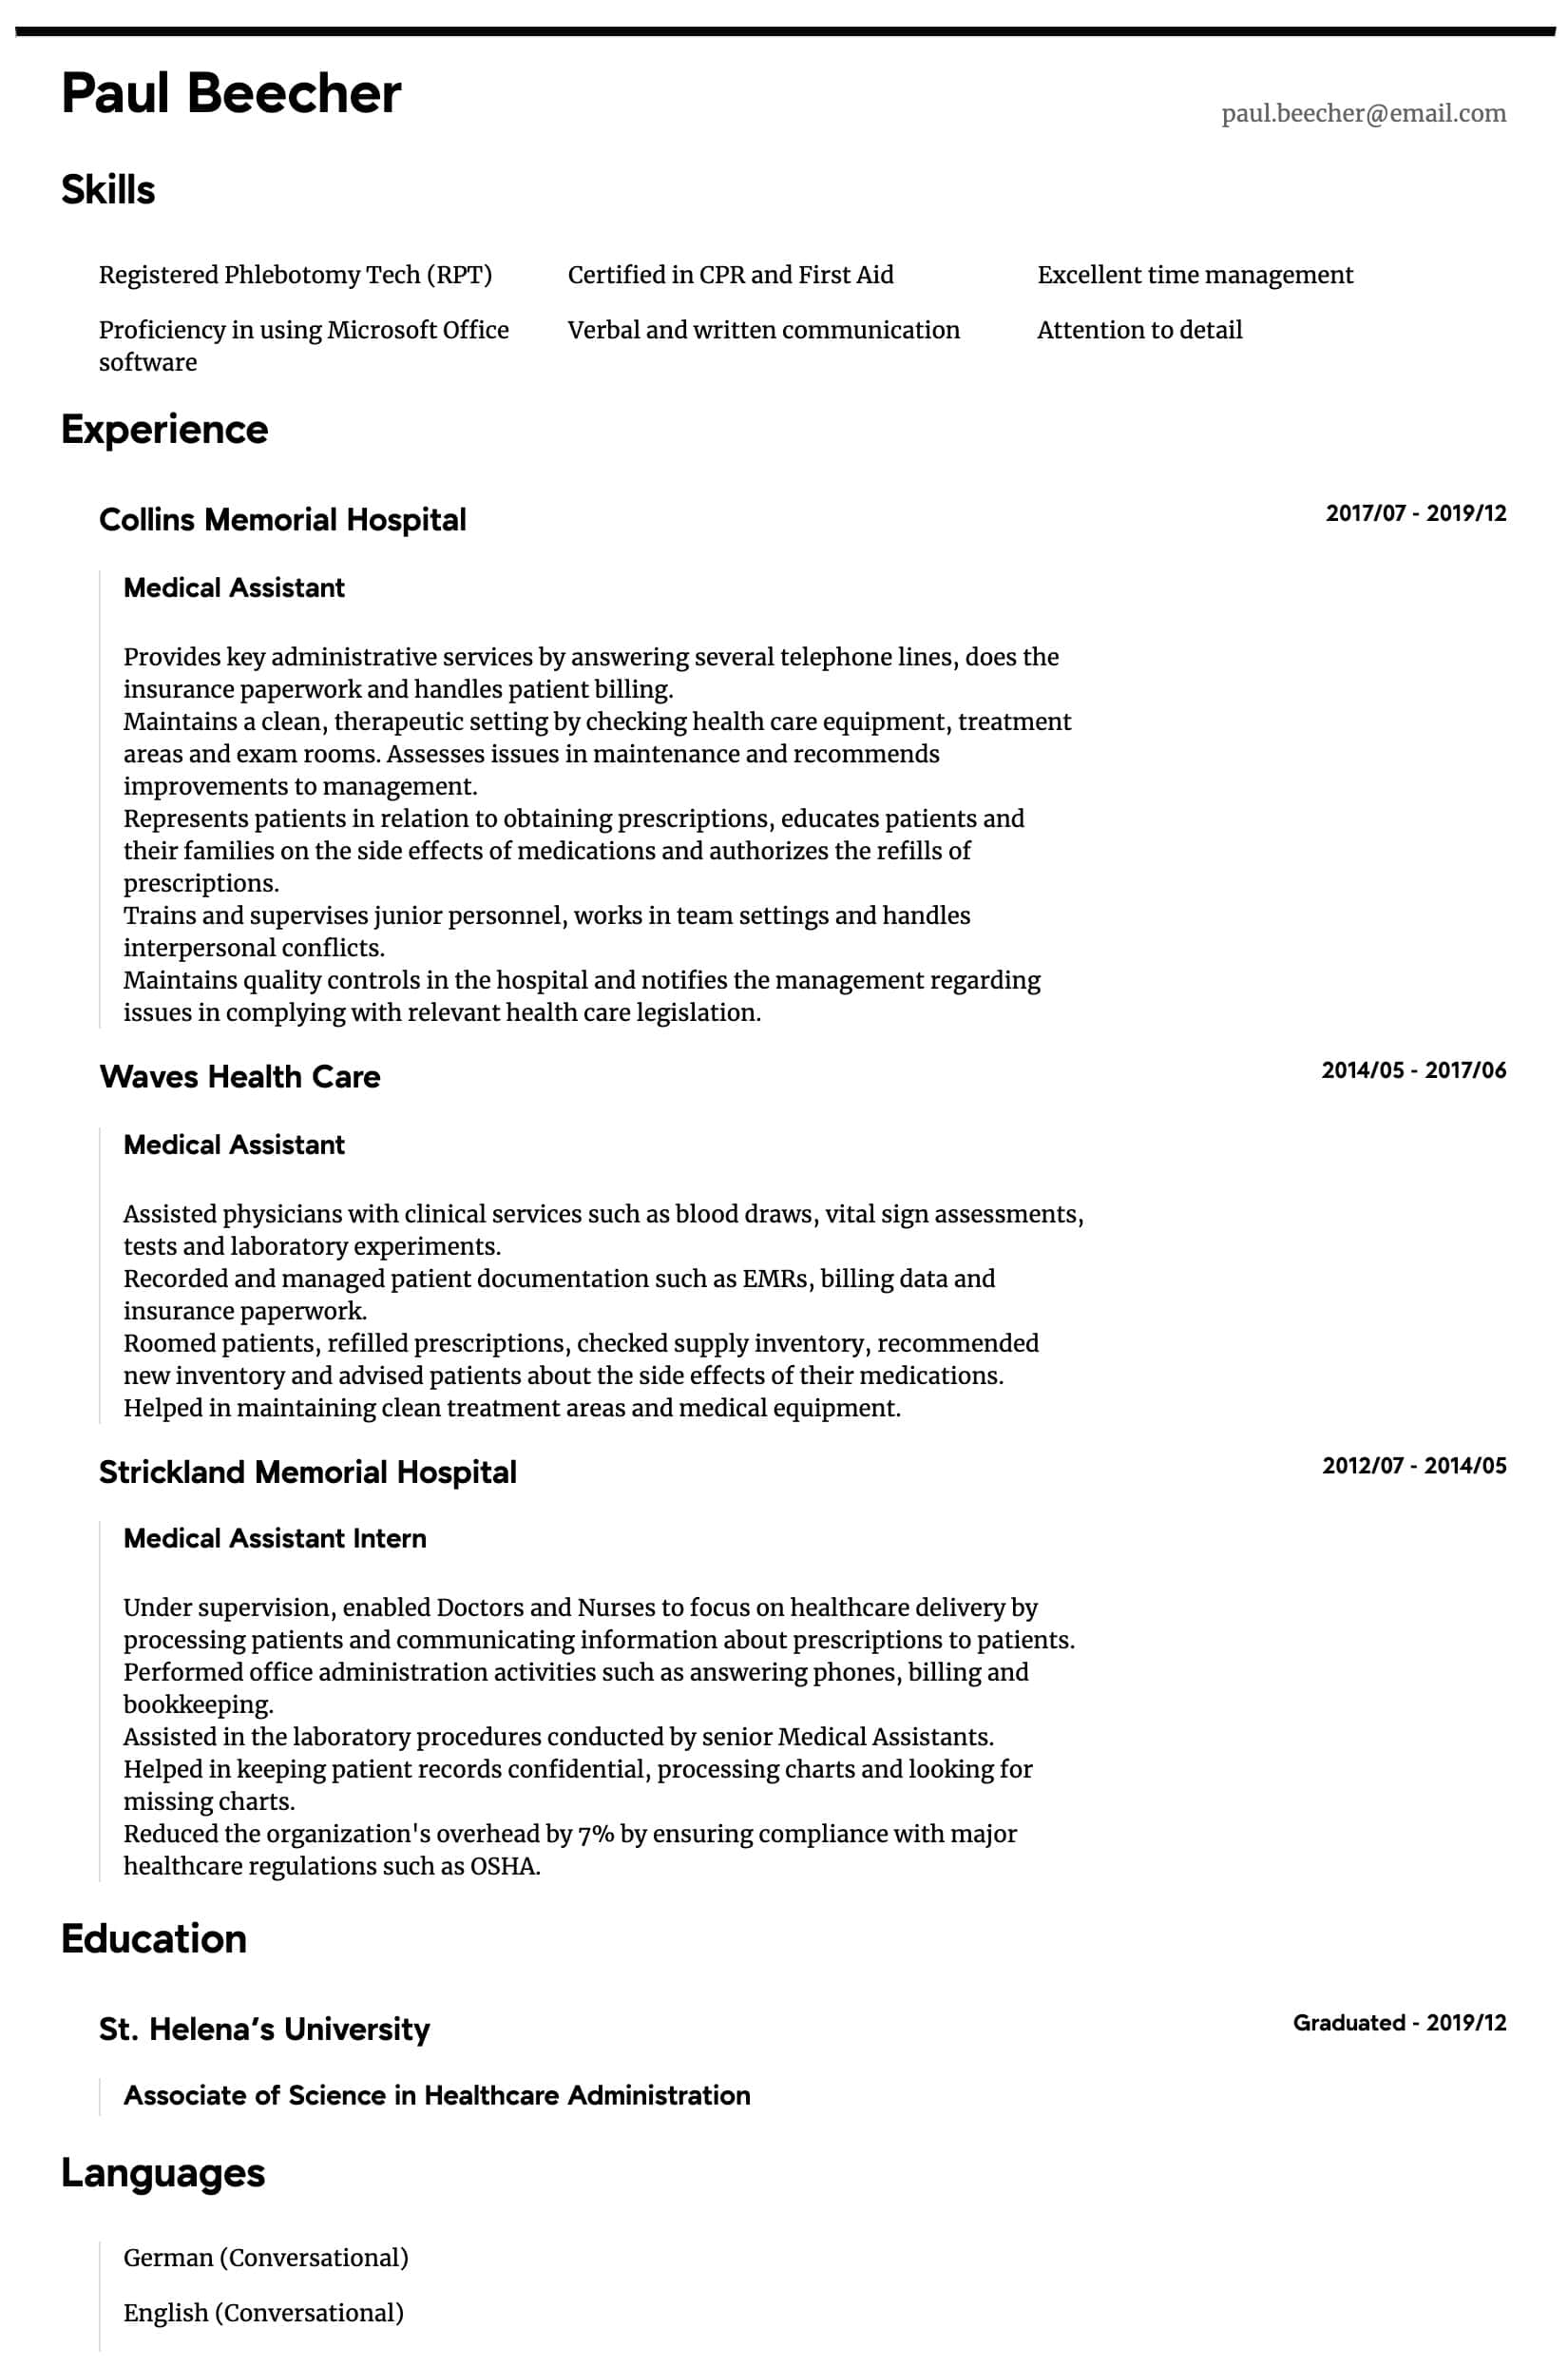 medical assistant resume samples all experience levels skills for intermediate free Resume Skills For Resume For Medical Assistant